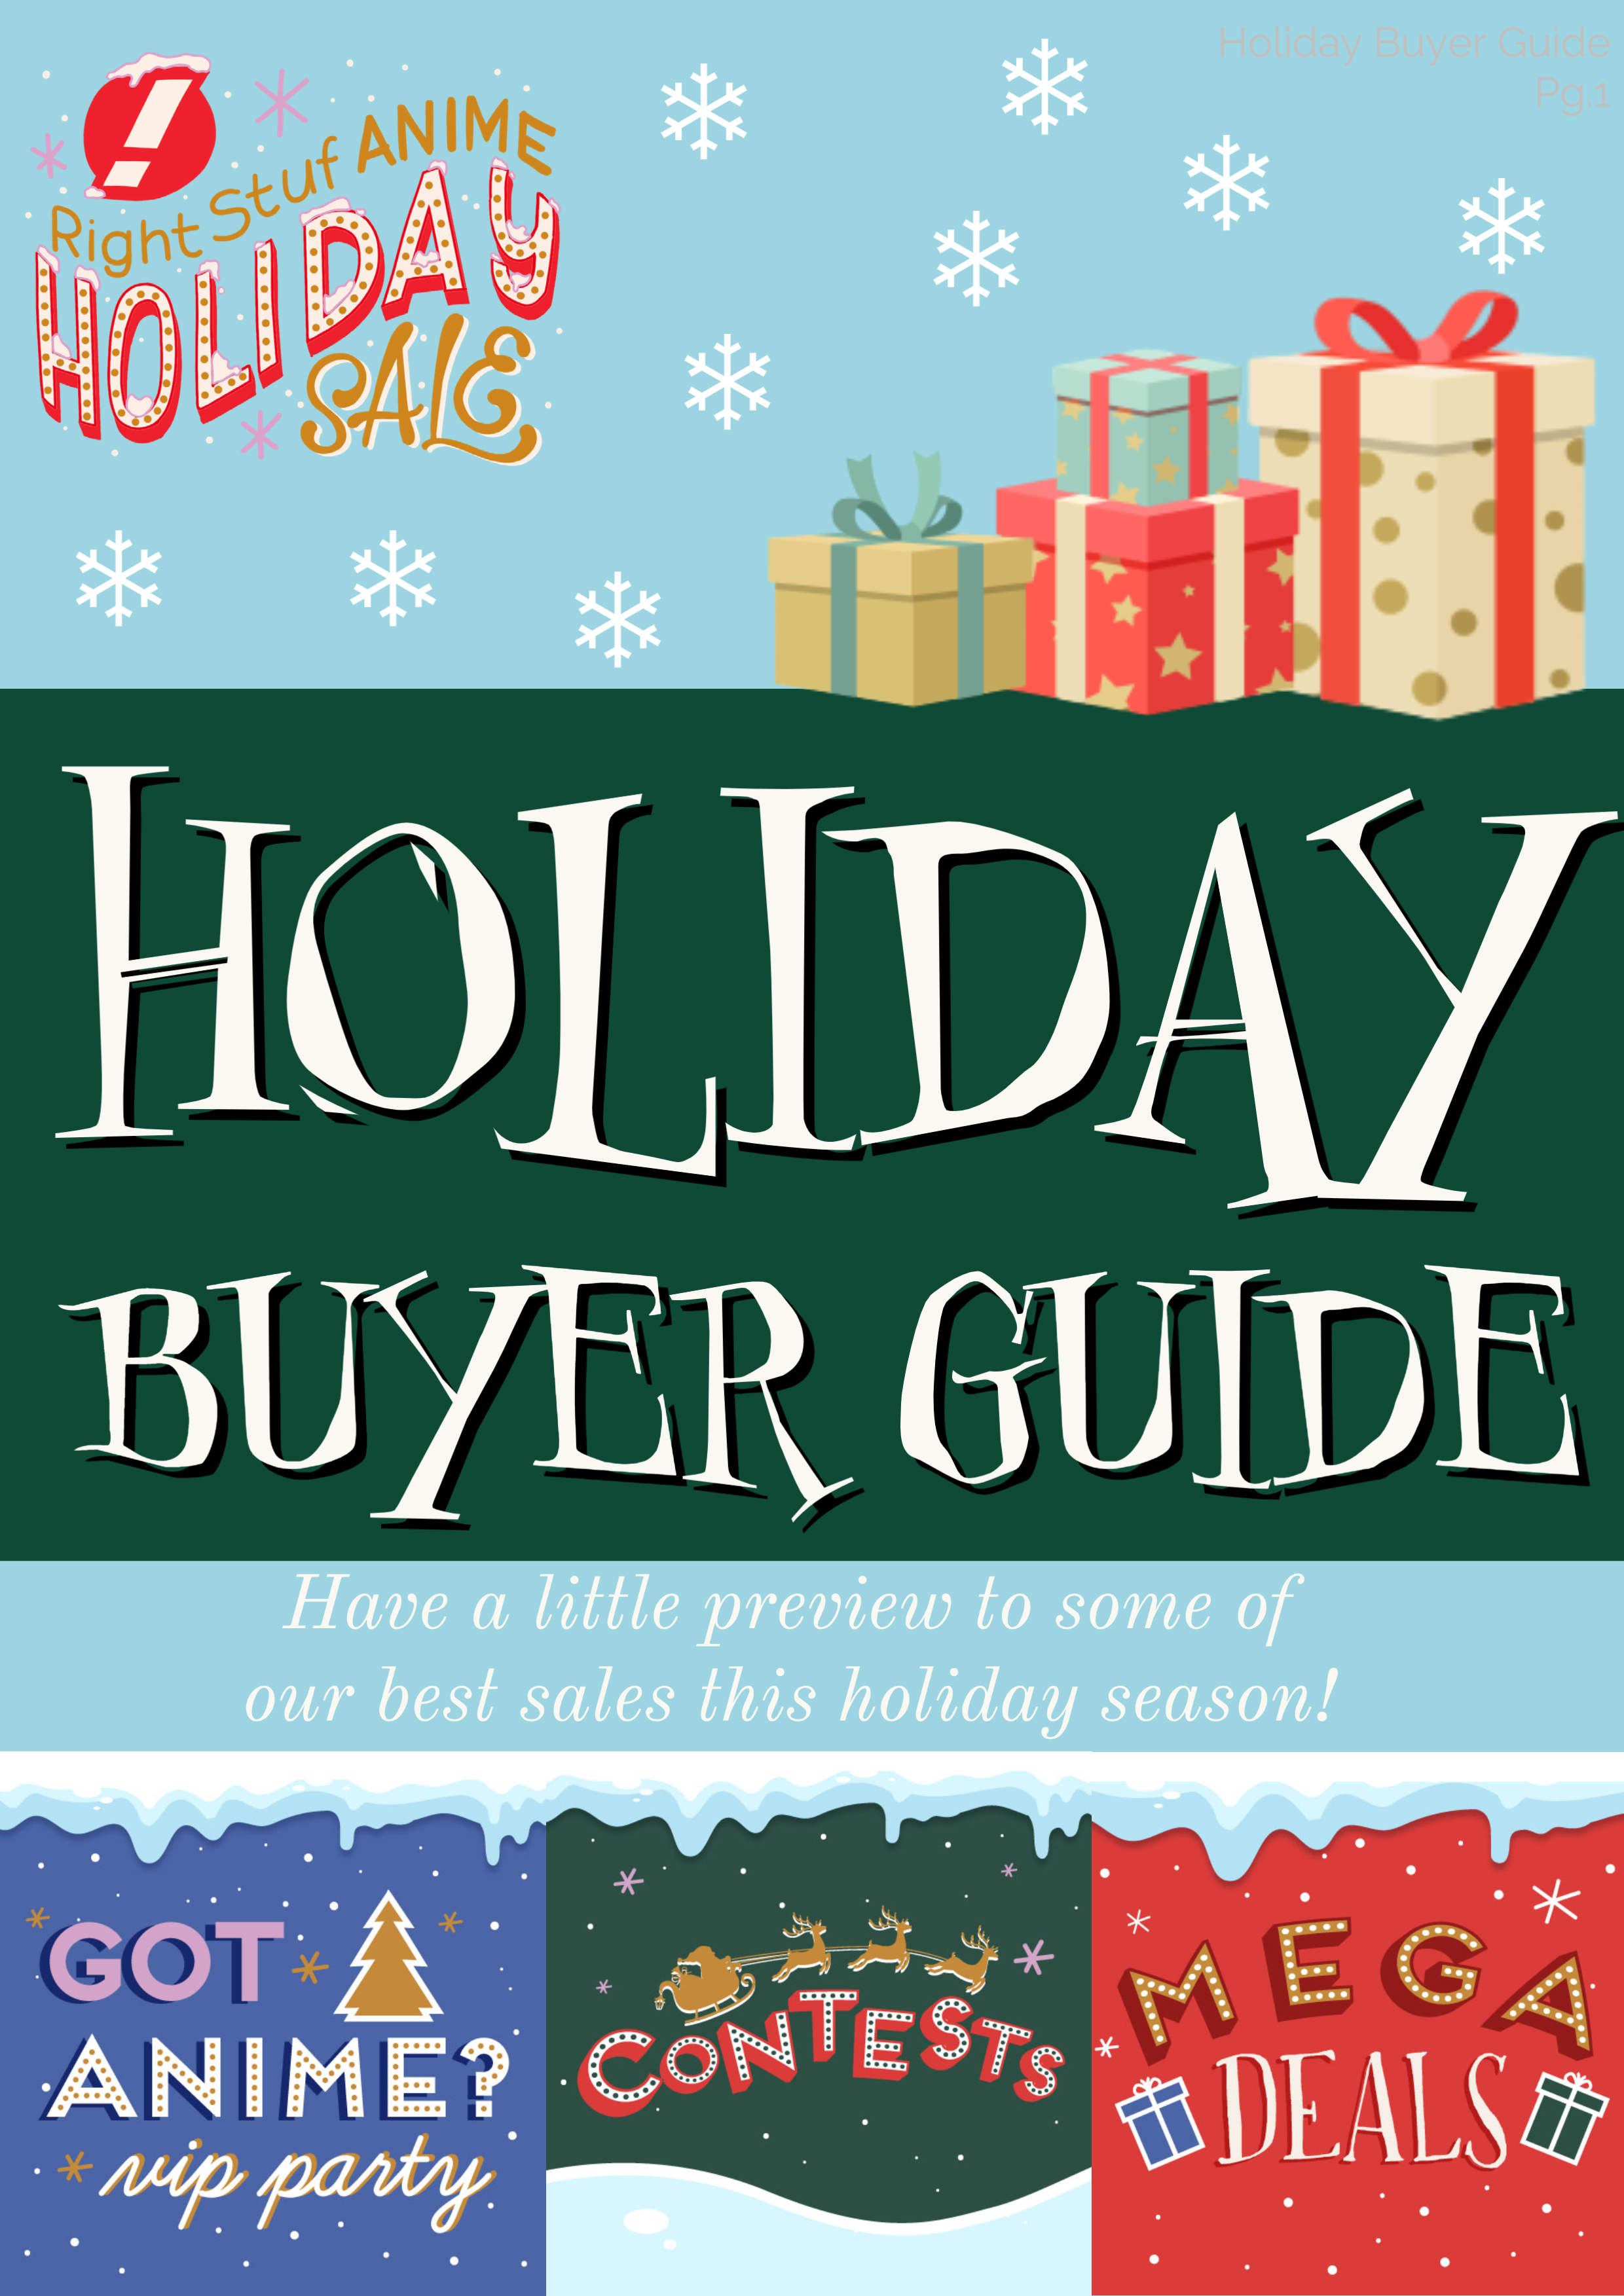 Holiday guide pg 1